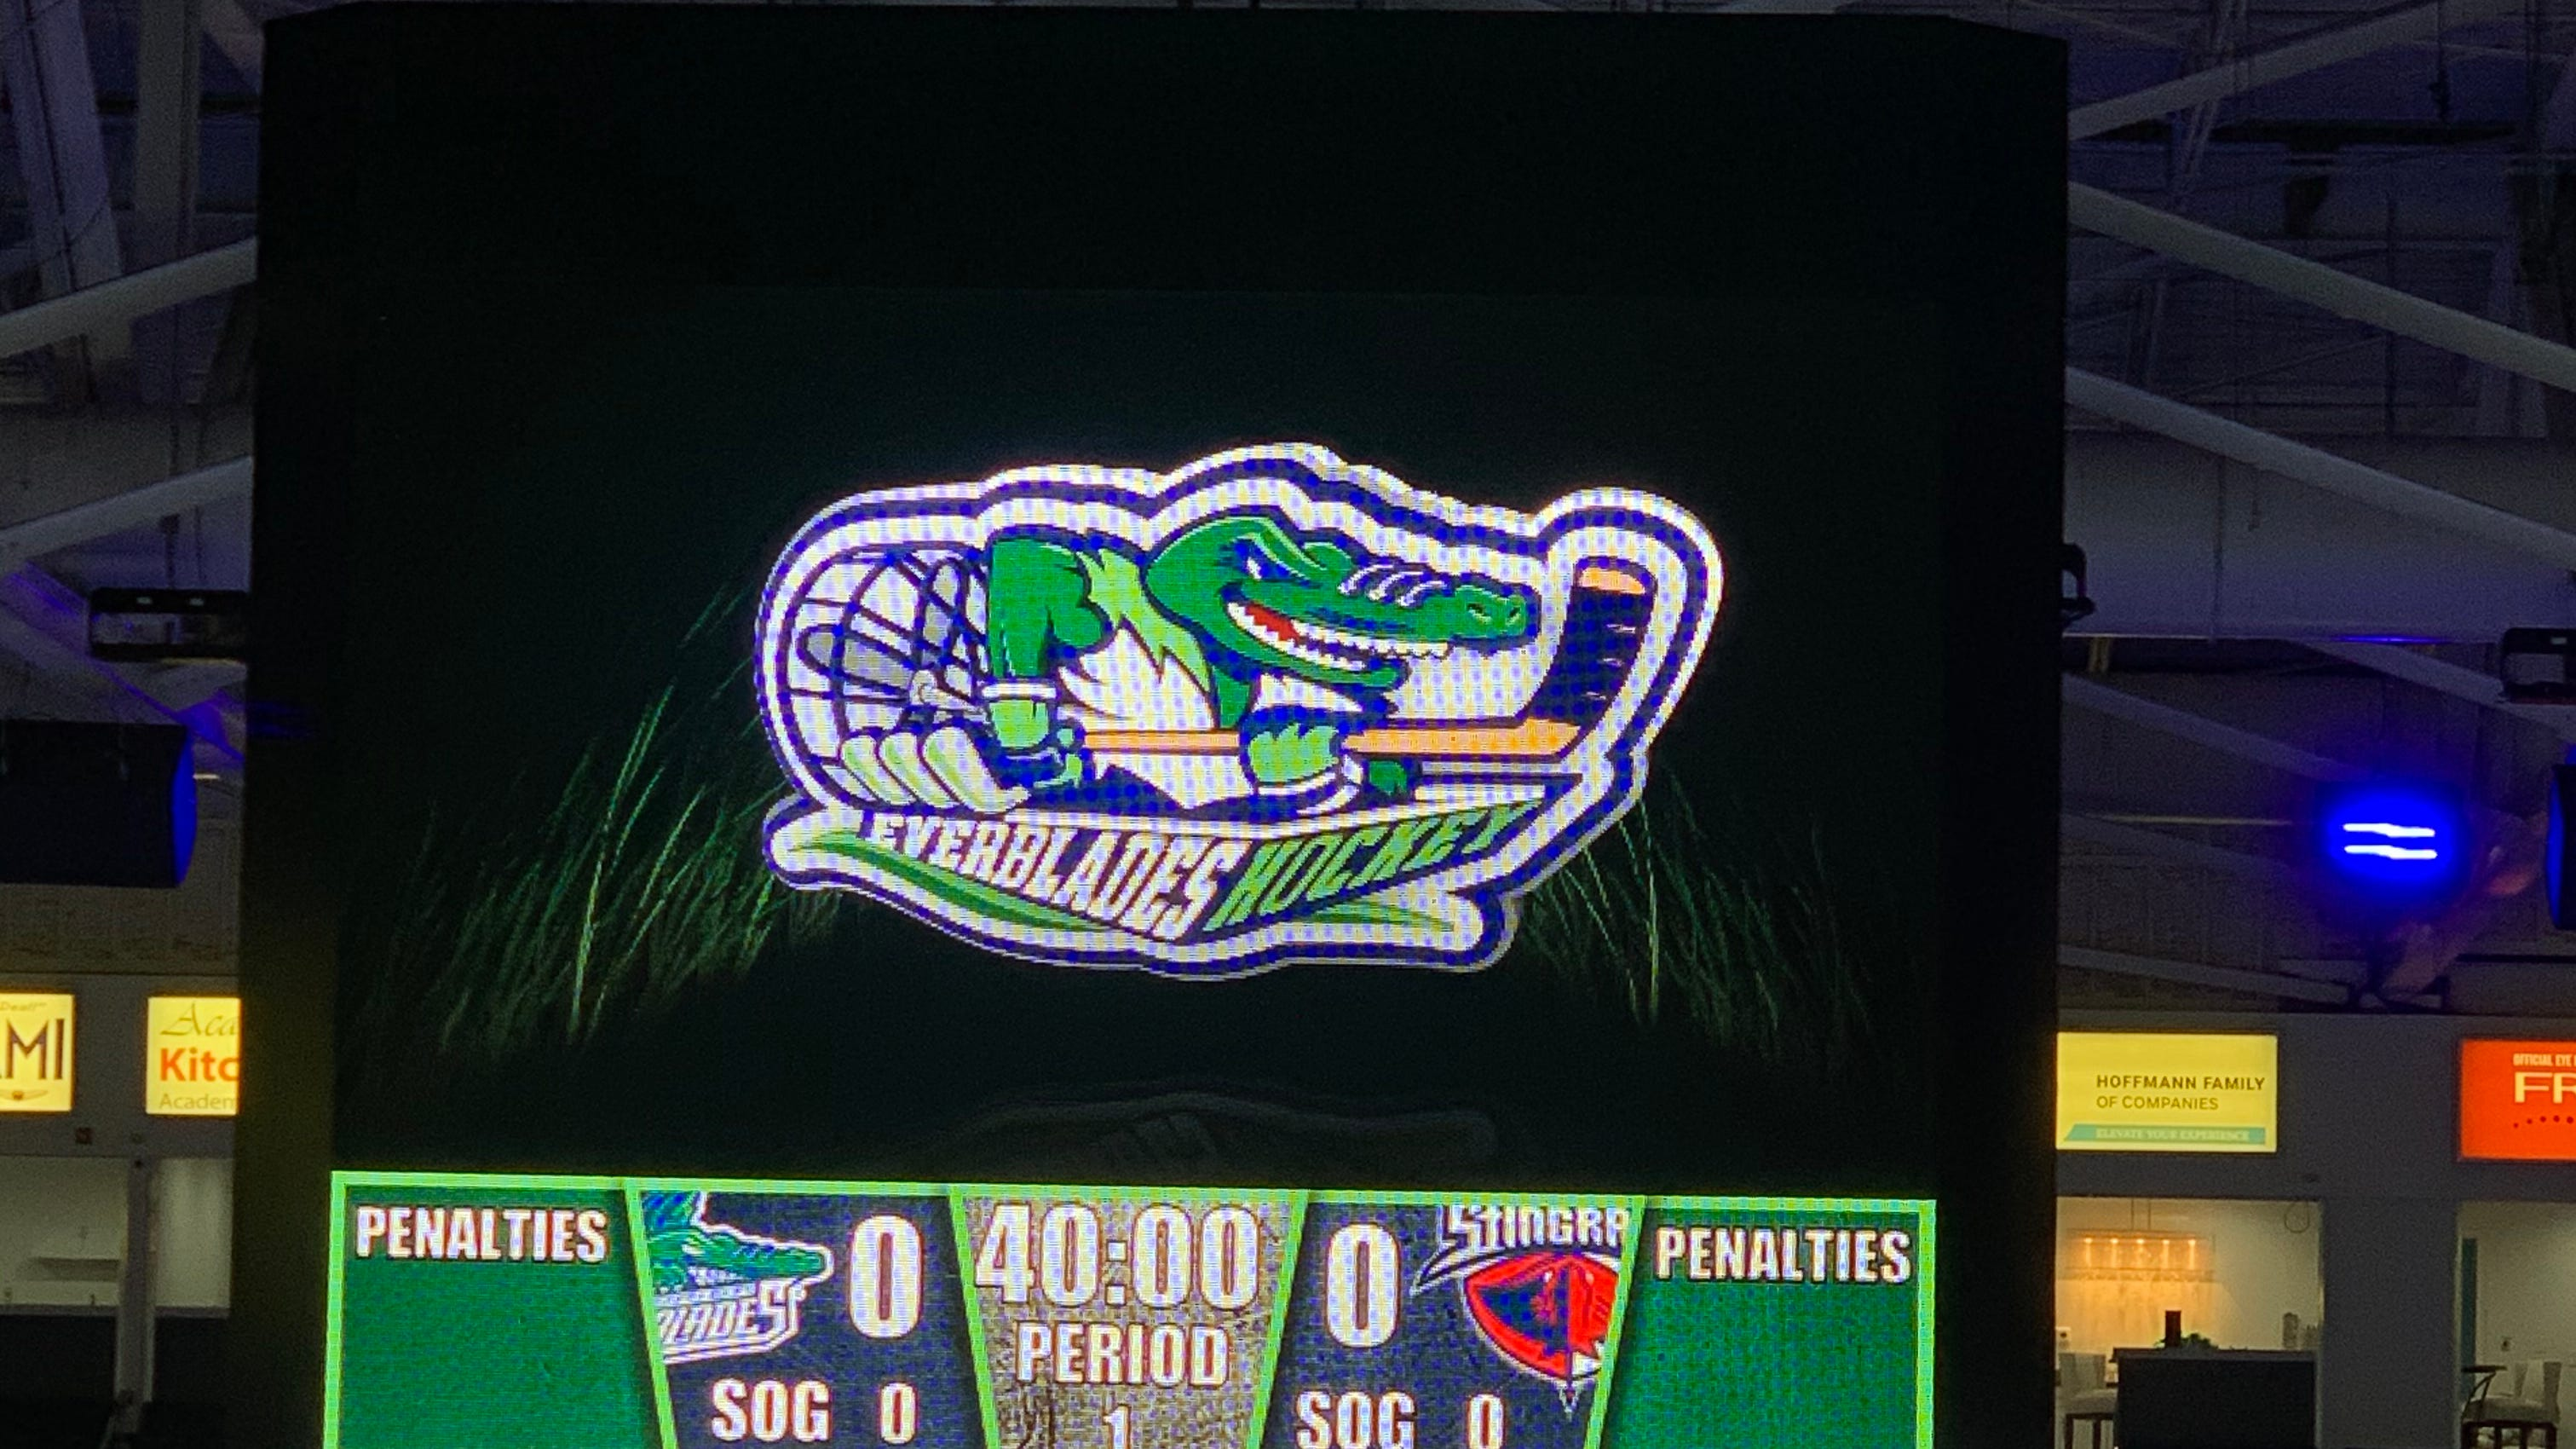 David Hoffmann enthused with Everblades first half, Hertz Arena renovations